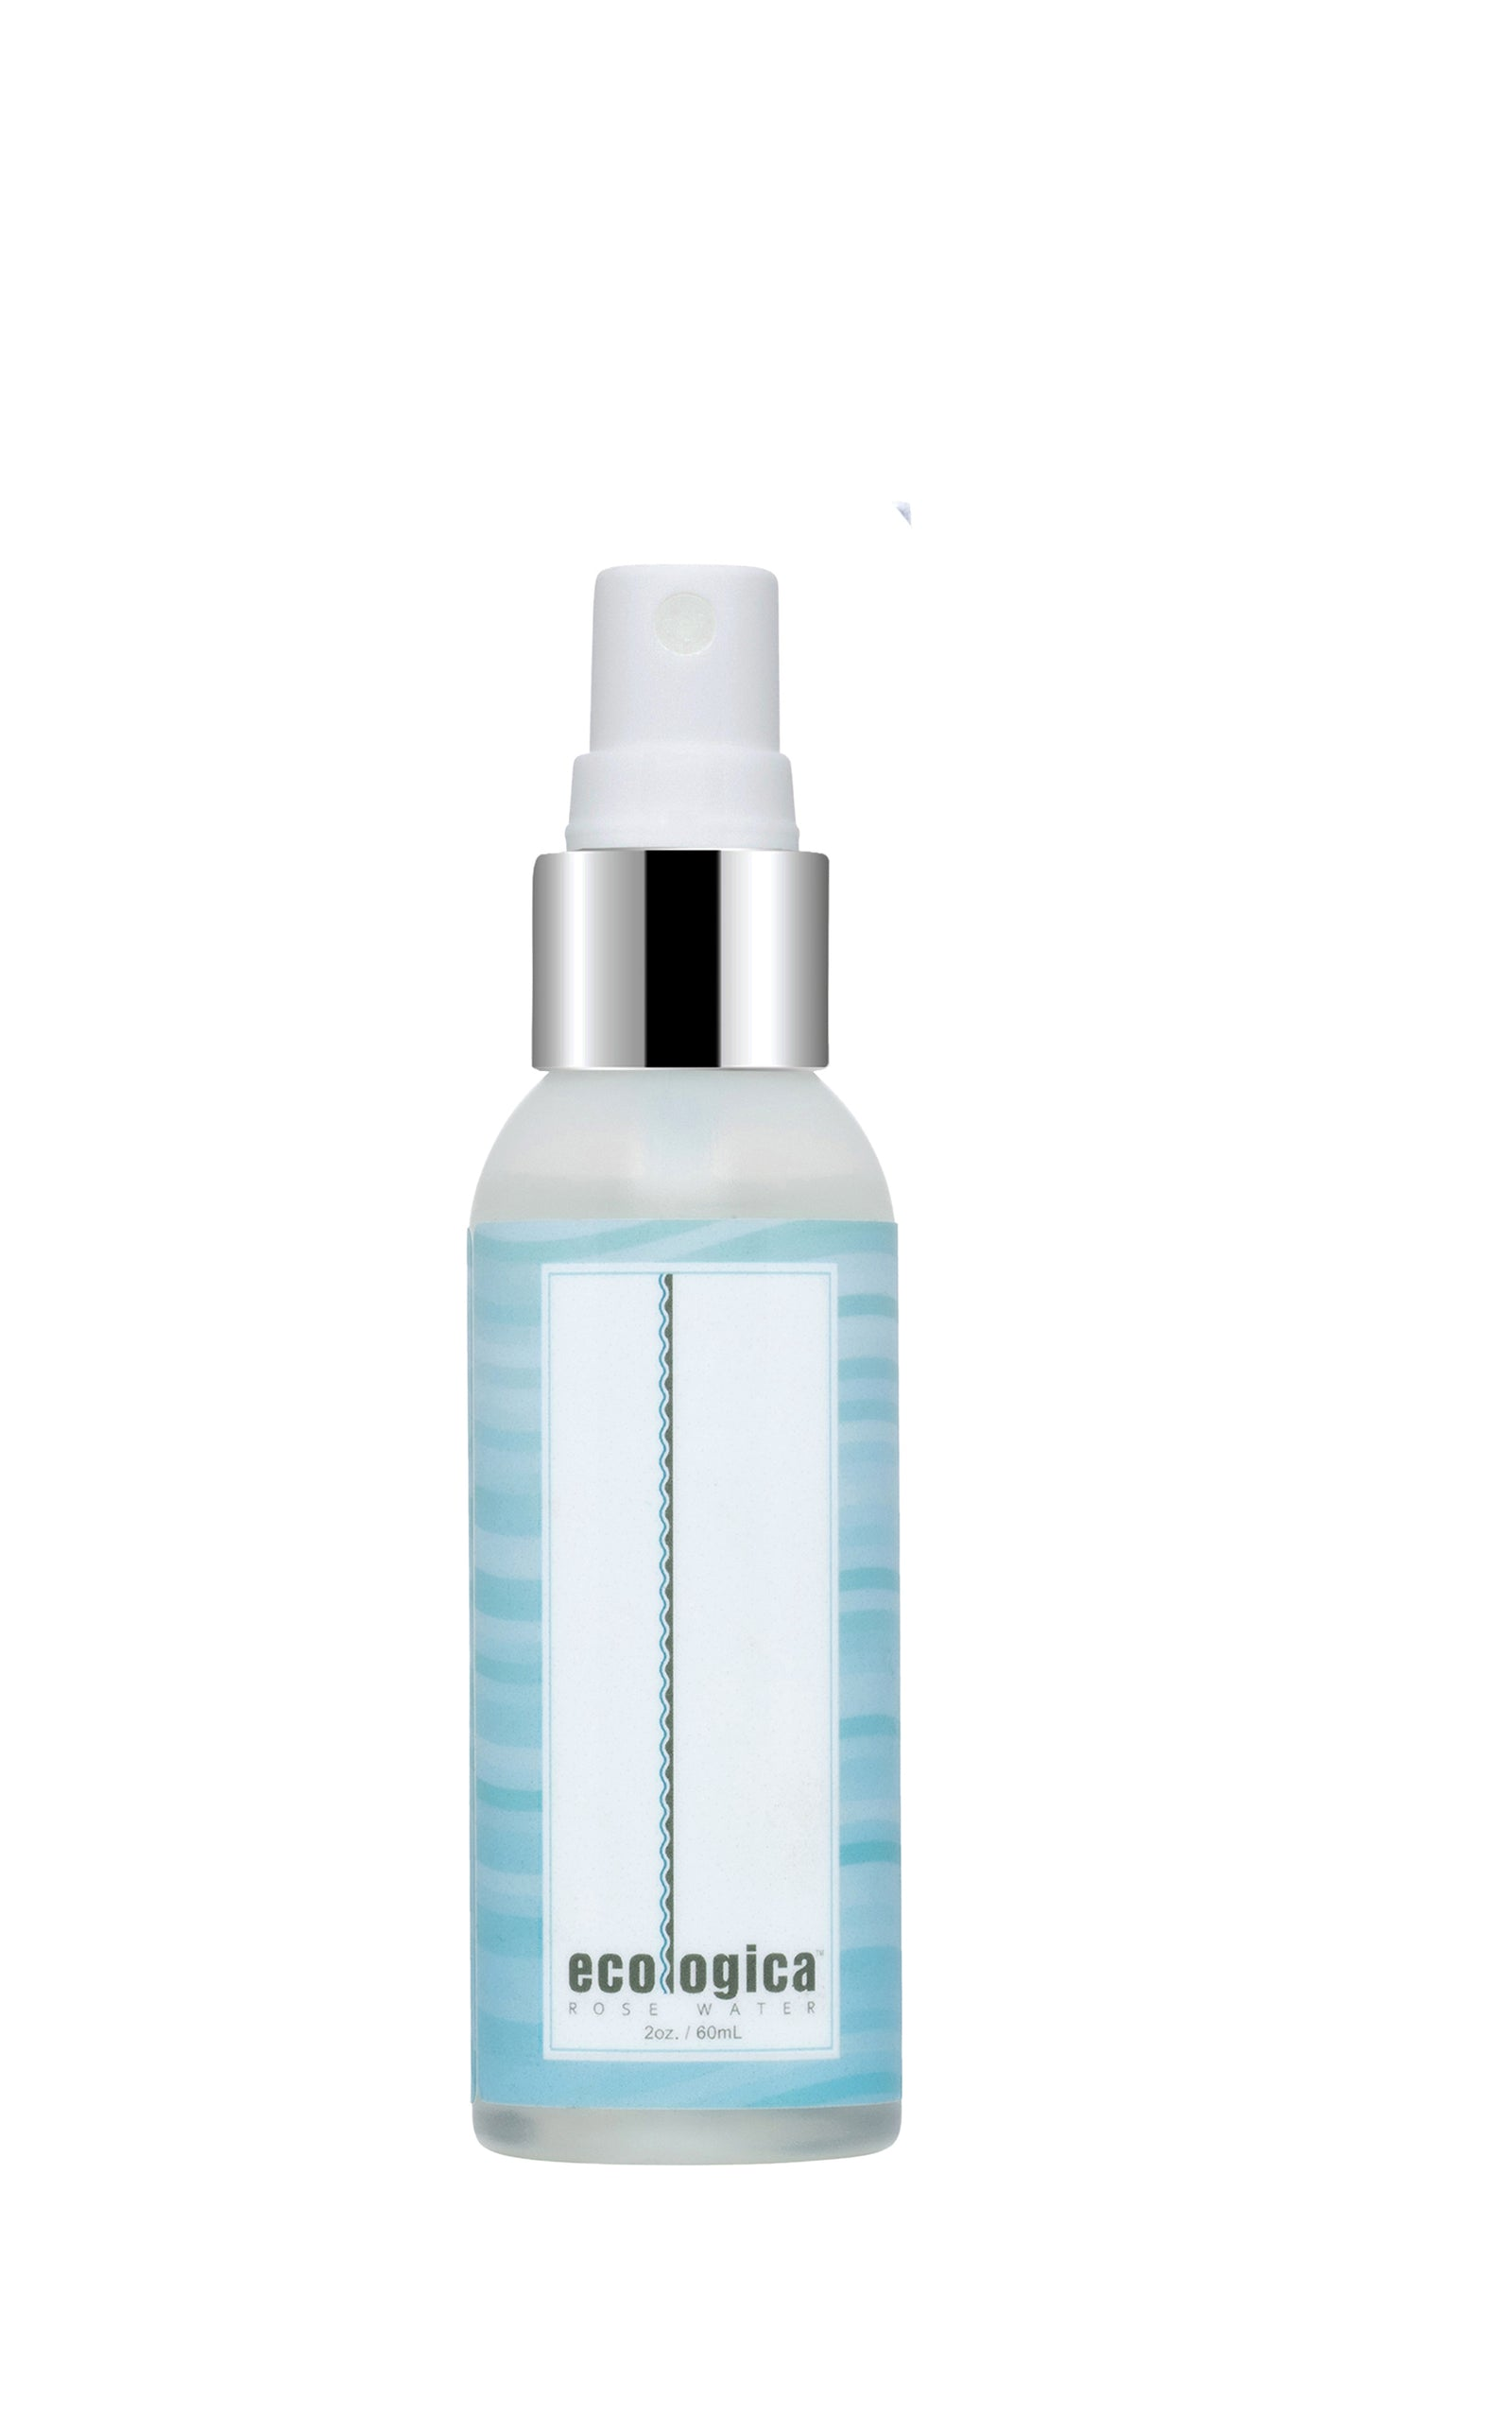 Rose Water Spray by ecologica